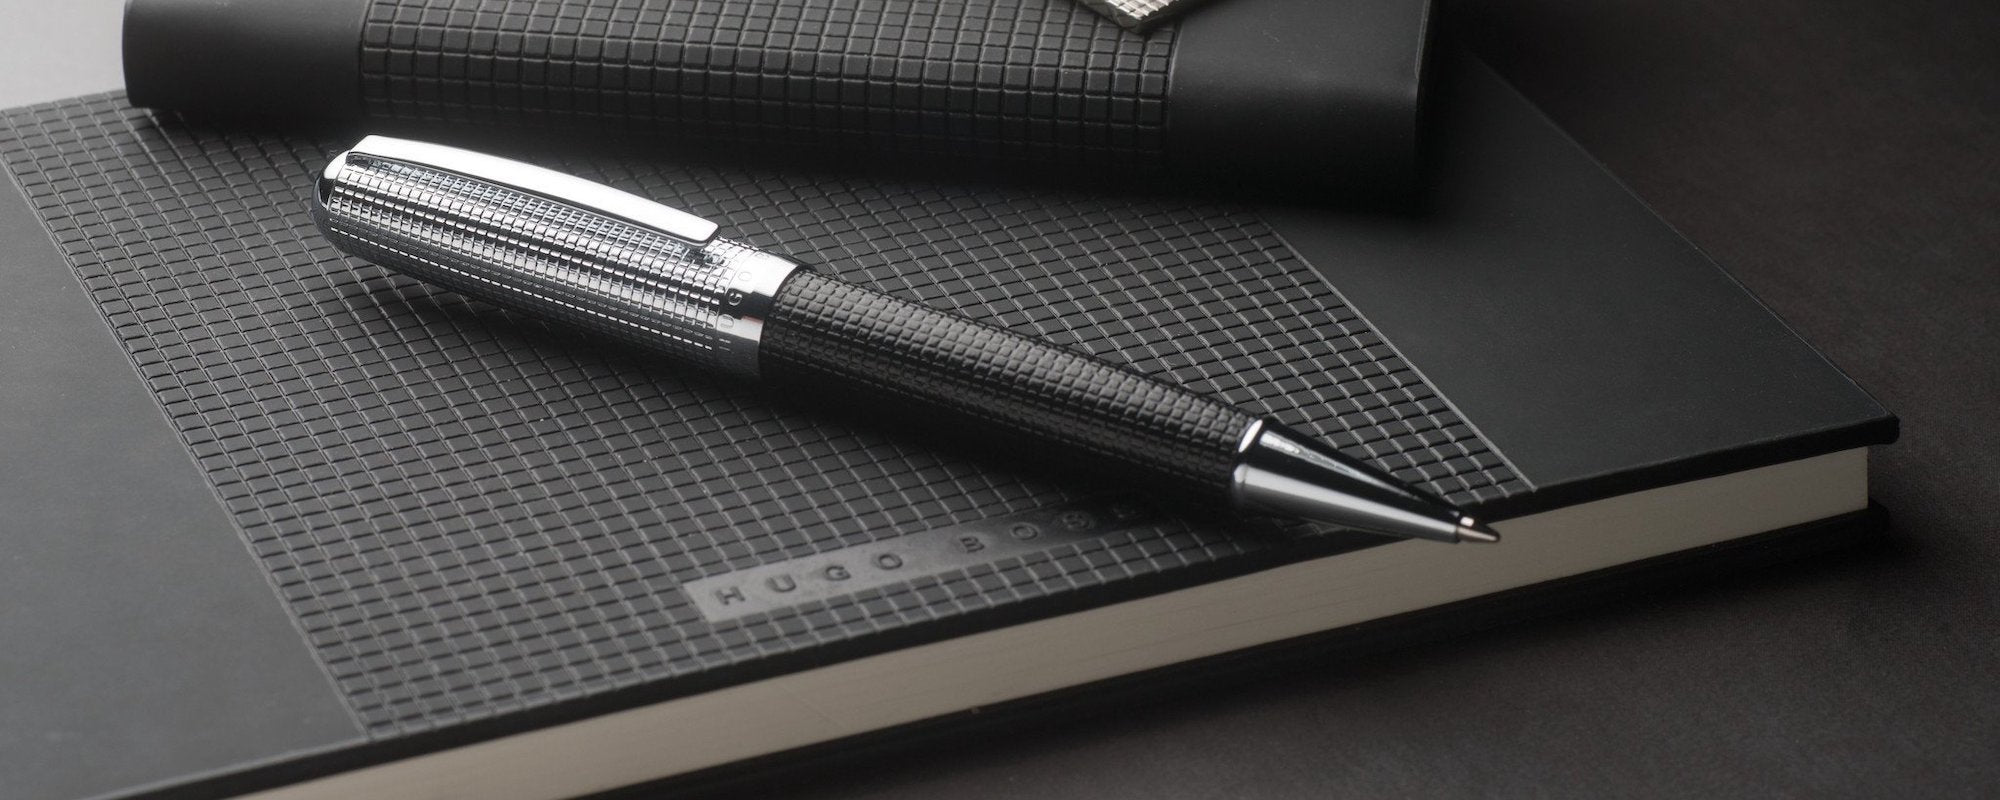 The latest Hugo Boss pens range are perfect mens gifts